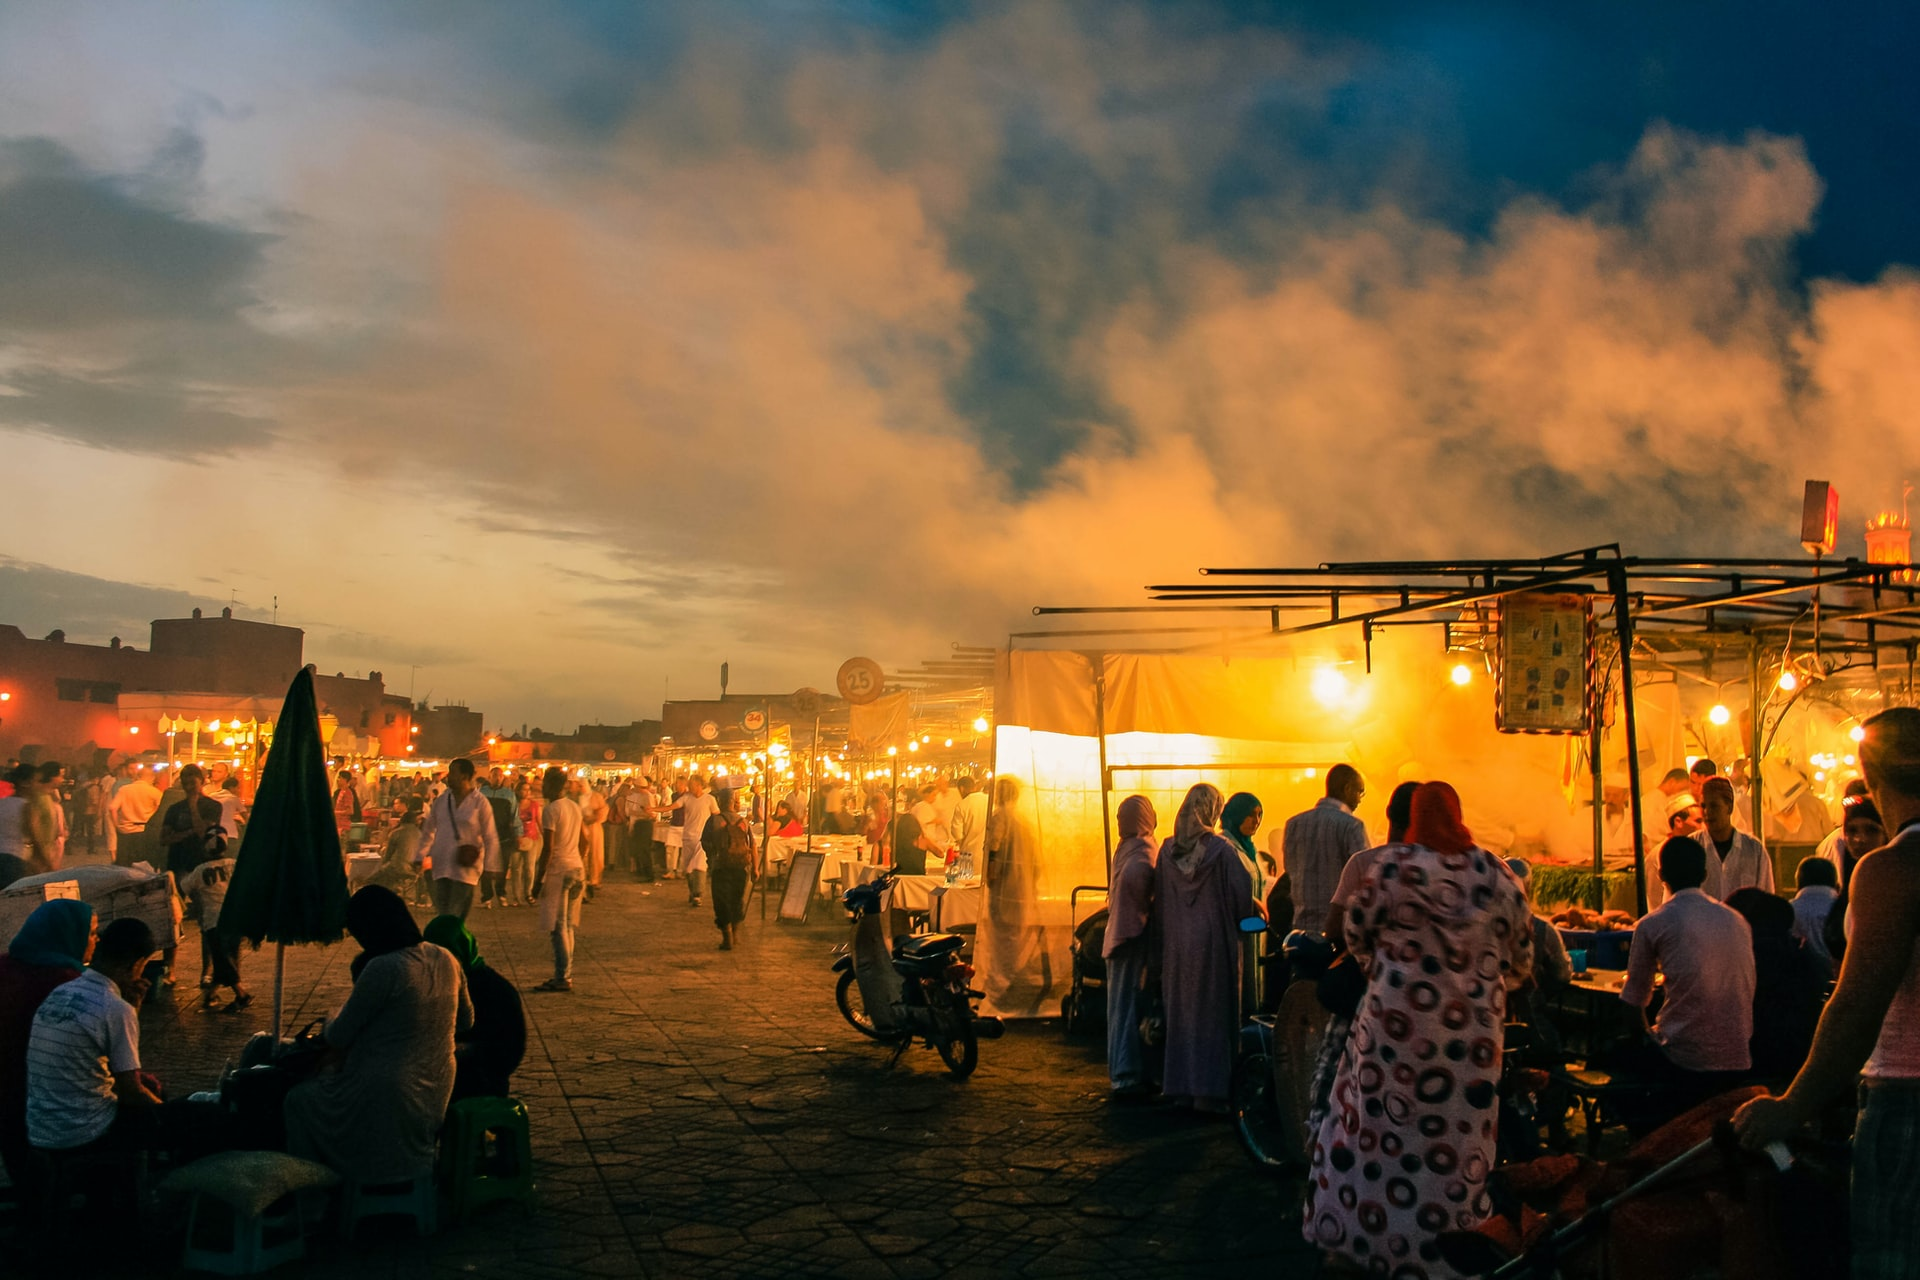 Busy market with stalls and people in the sunset in Marrakech